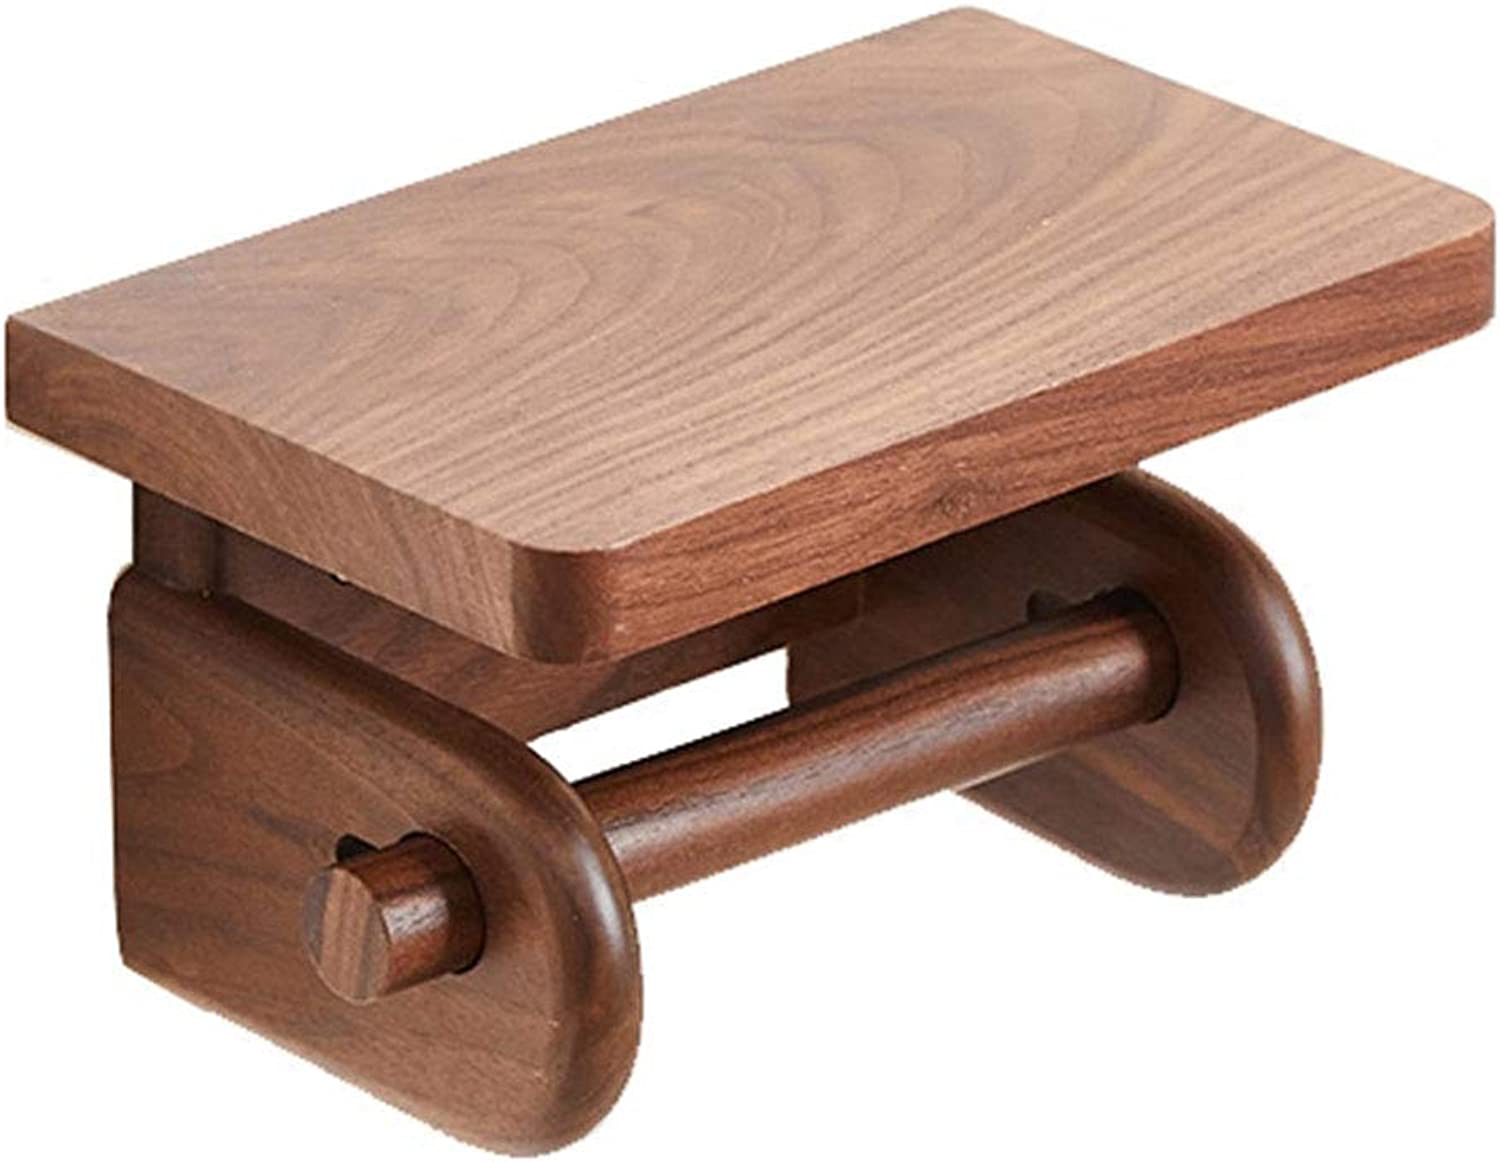 ZHANWEI Bathroom Shelf Shower Organiser Paper Towel Holder Wall-Mounted Wood Phone Stand Multifunction Punch Walnut color (color   190x120x115mm)